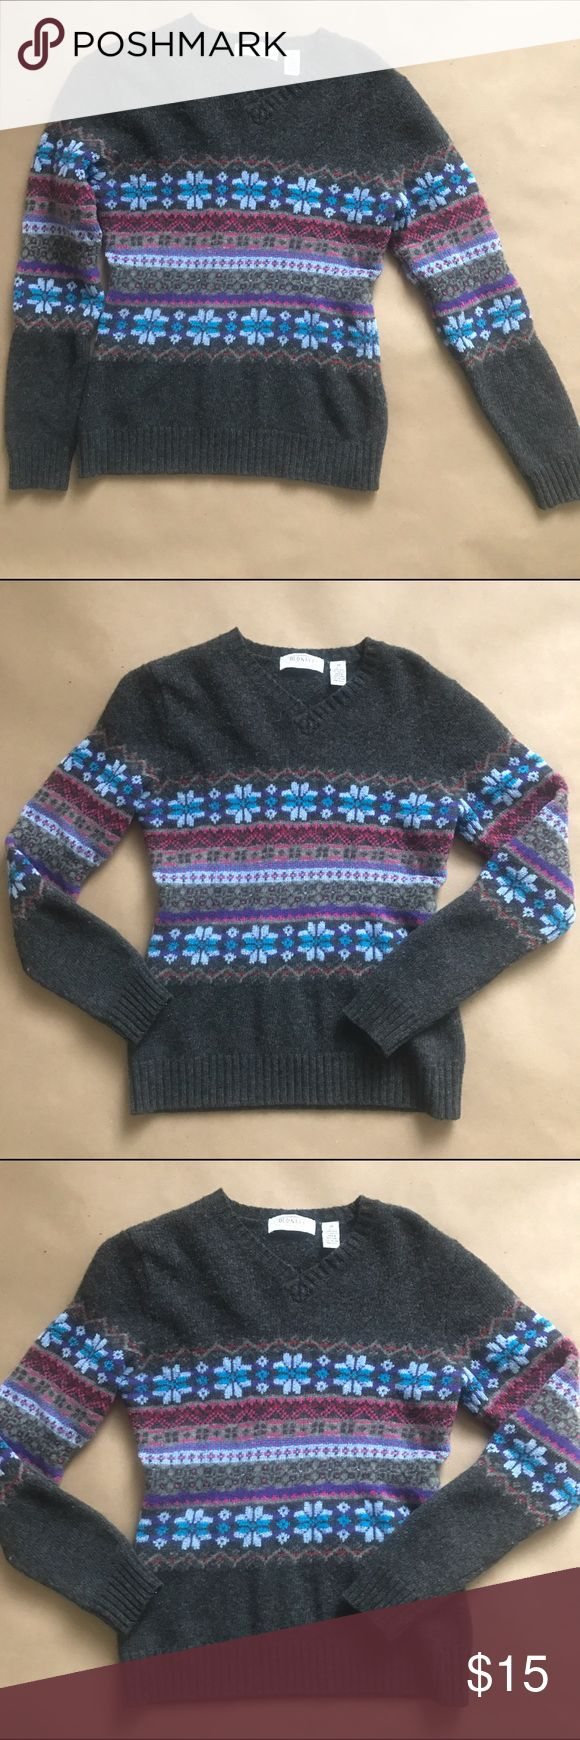 OLD NAVY SWEATER Old navi sweater size M 85%lambswool 15% acrylic made in Hong Kong dry clean only Old Navy Sweaters V-Necks